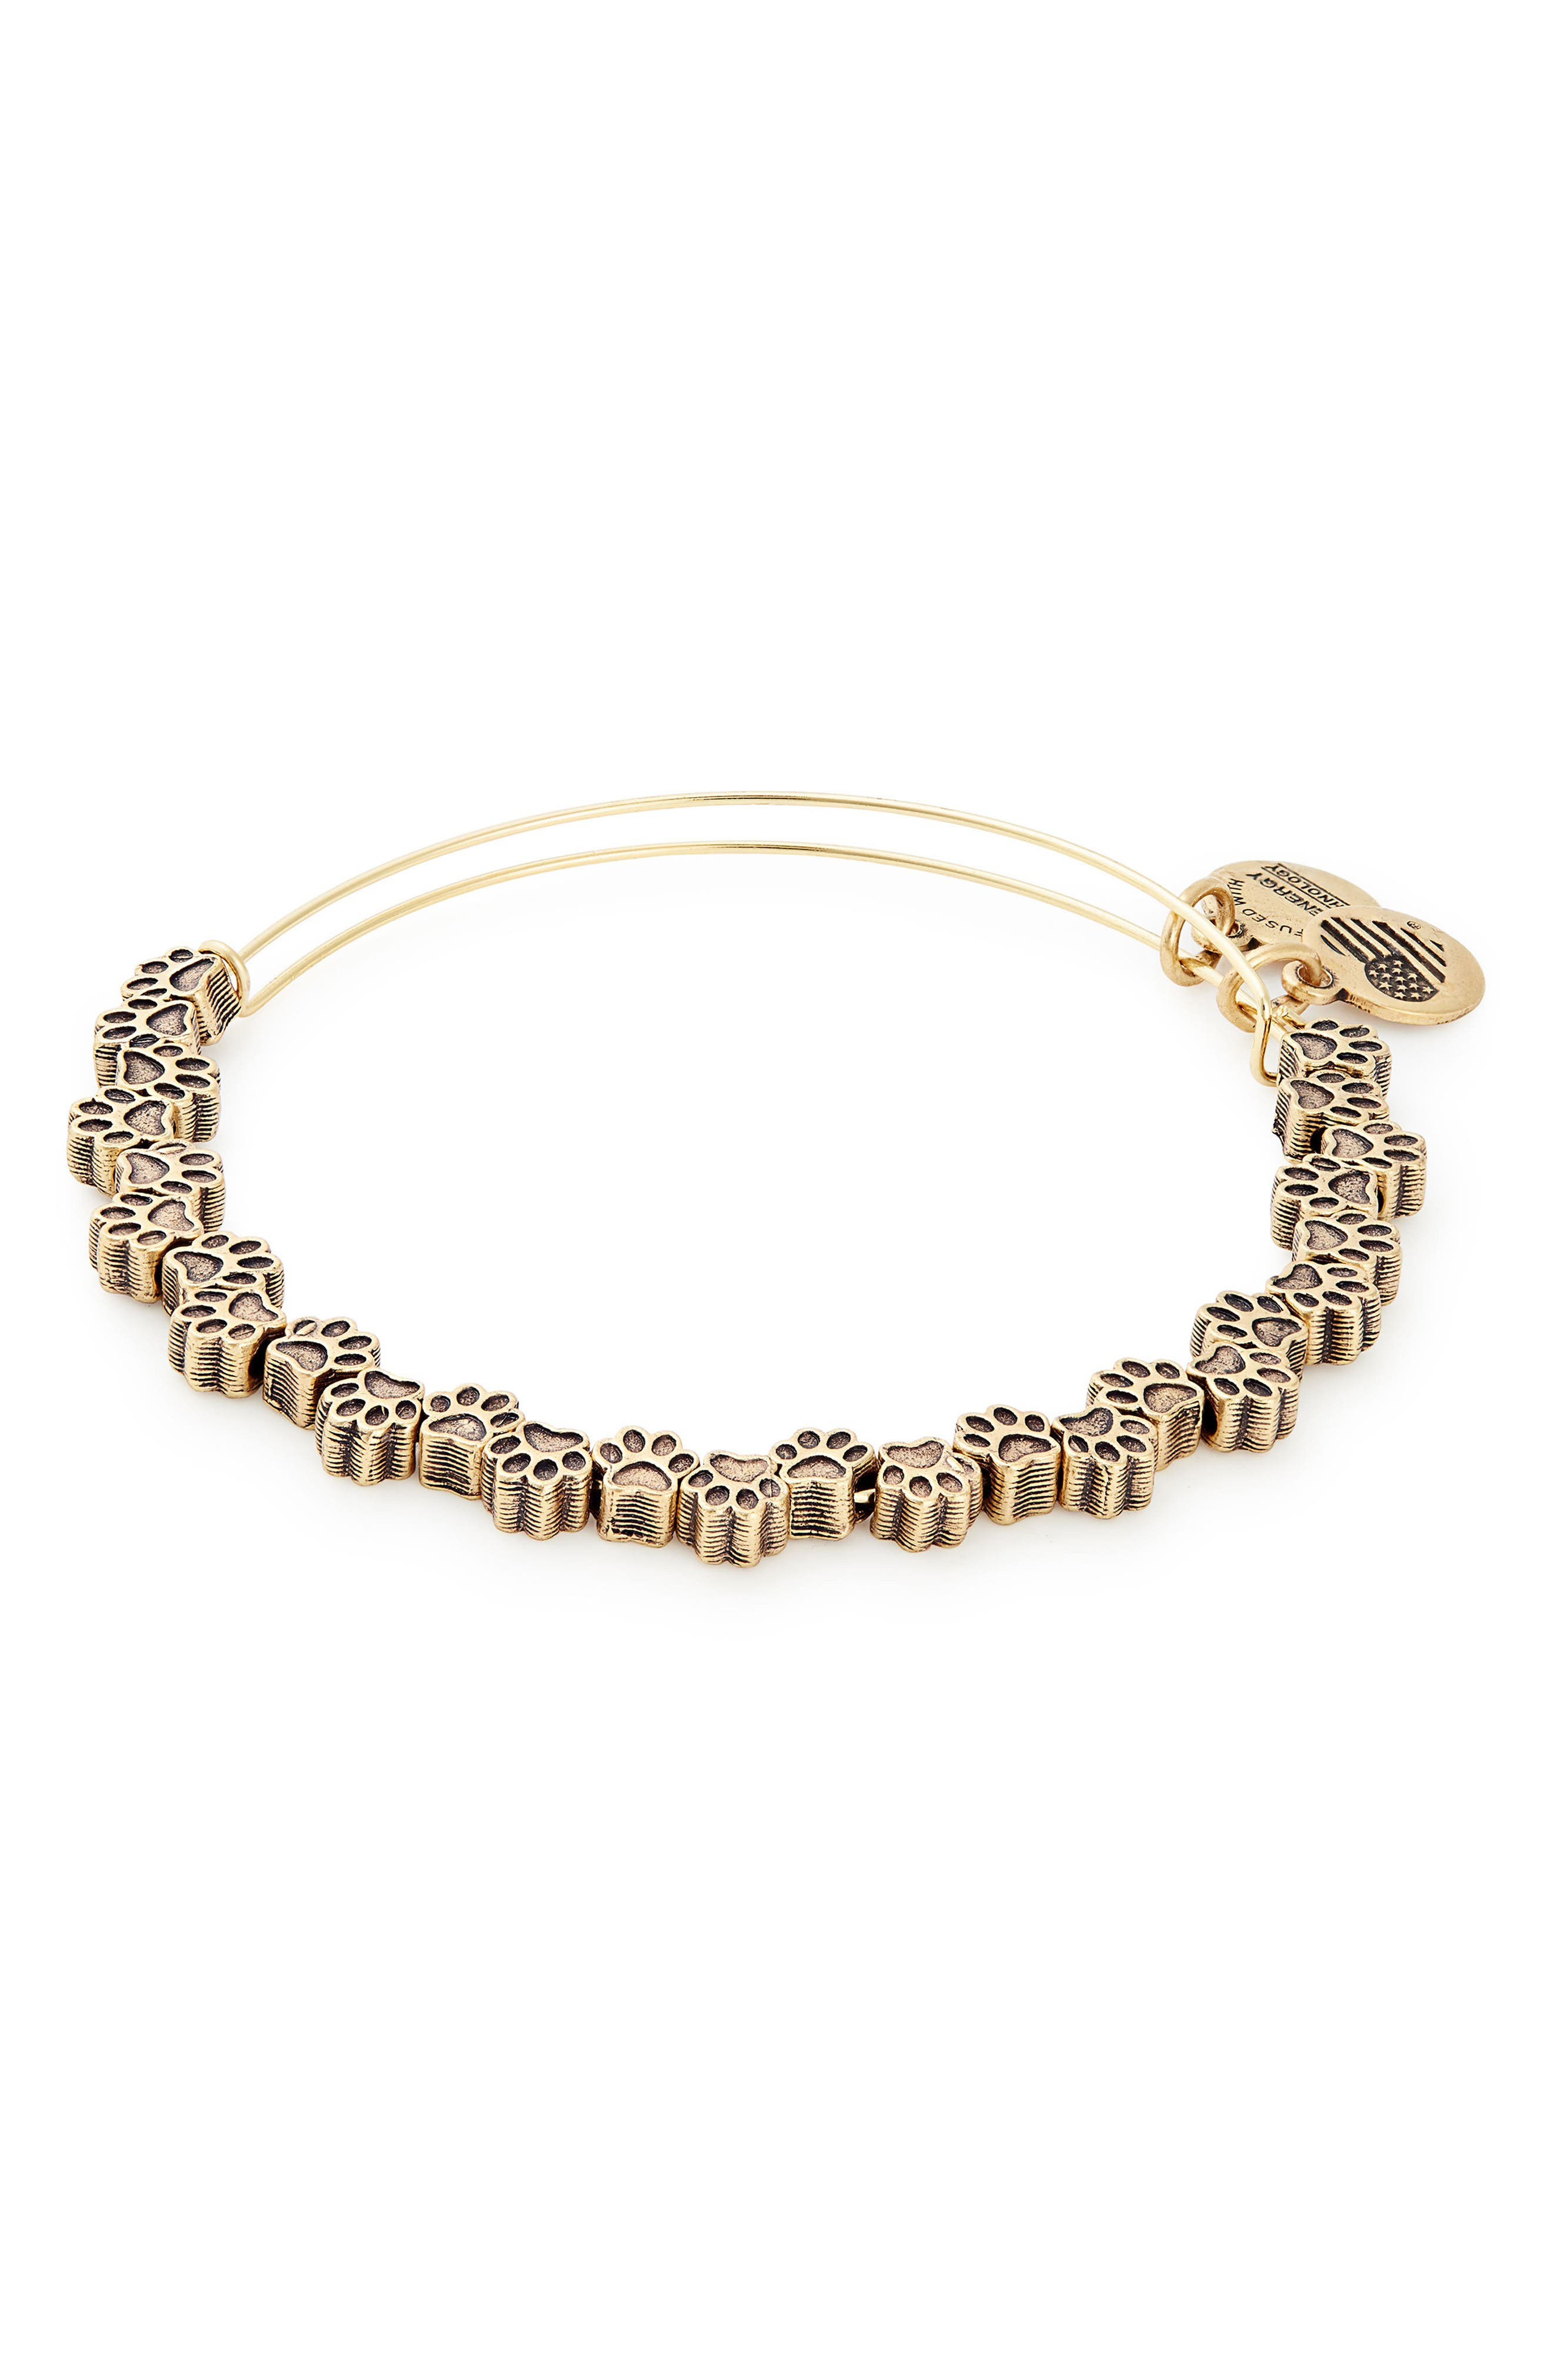 ALEX AND ANI Paw Print Beaded Adjustable Wire Bangle, Main, color, 710